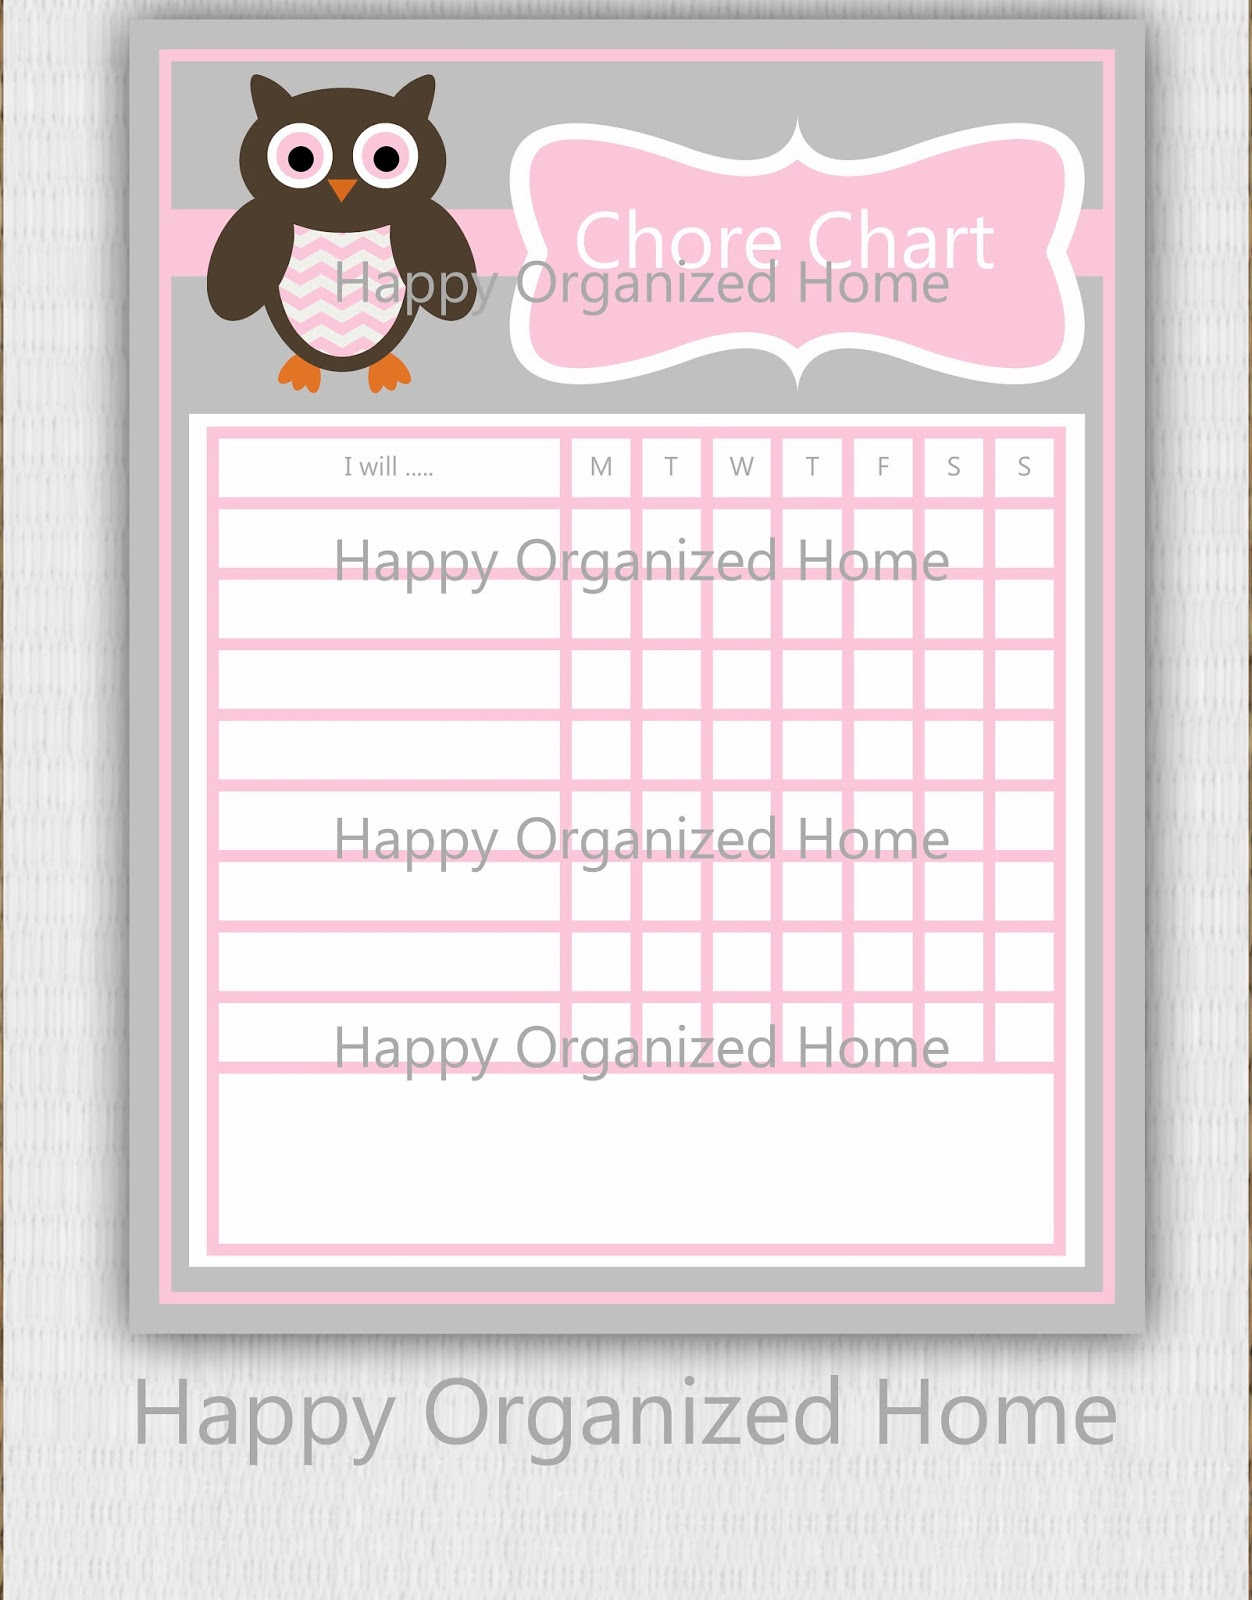 https://www.etsy.com/listing/126006078/instant-download-chore-chart-for-kids?ref=shop_home_feat_3